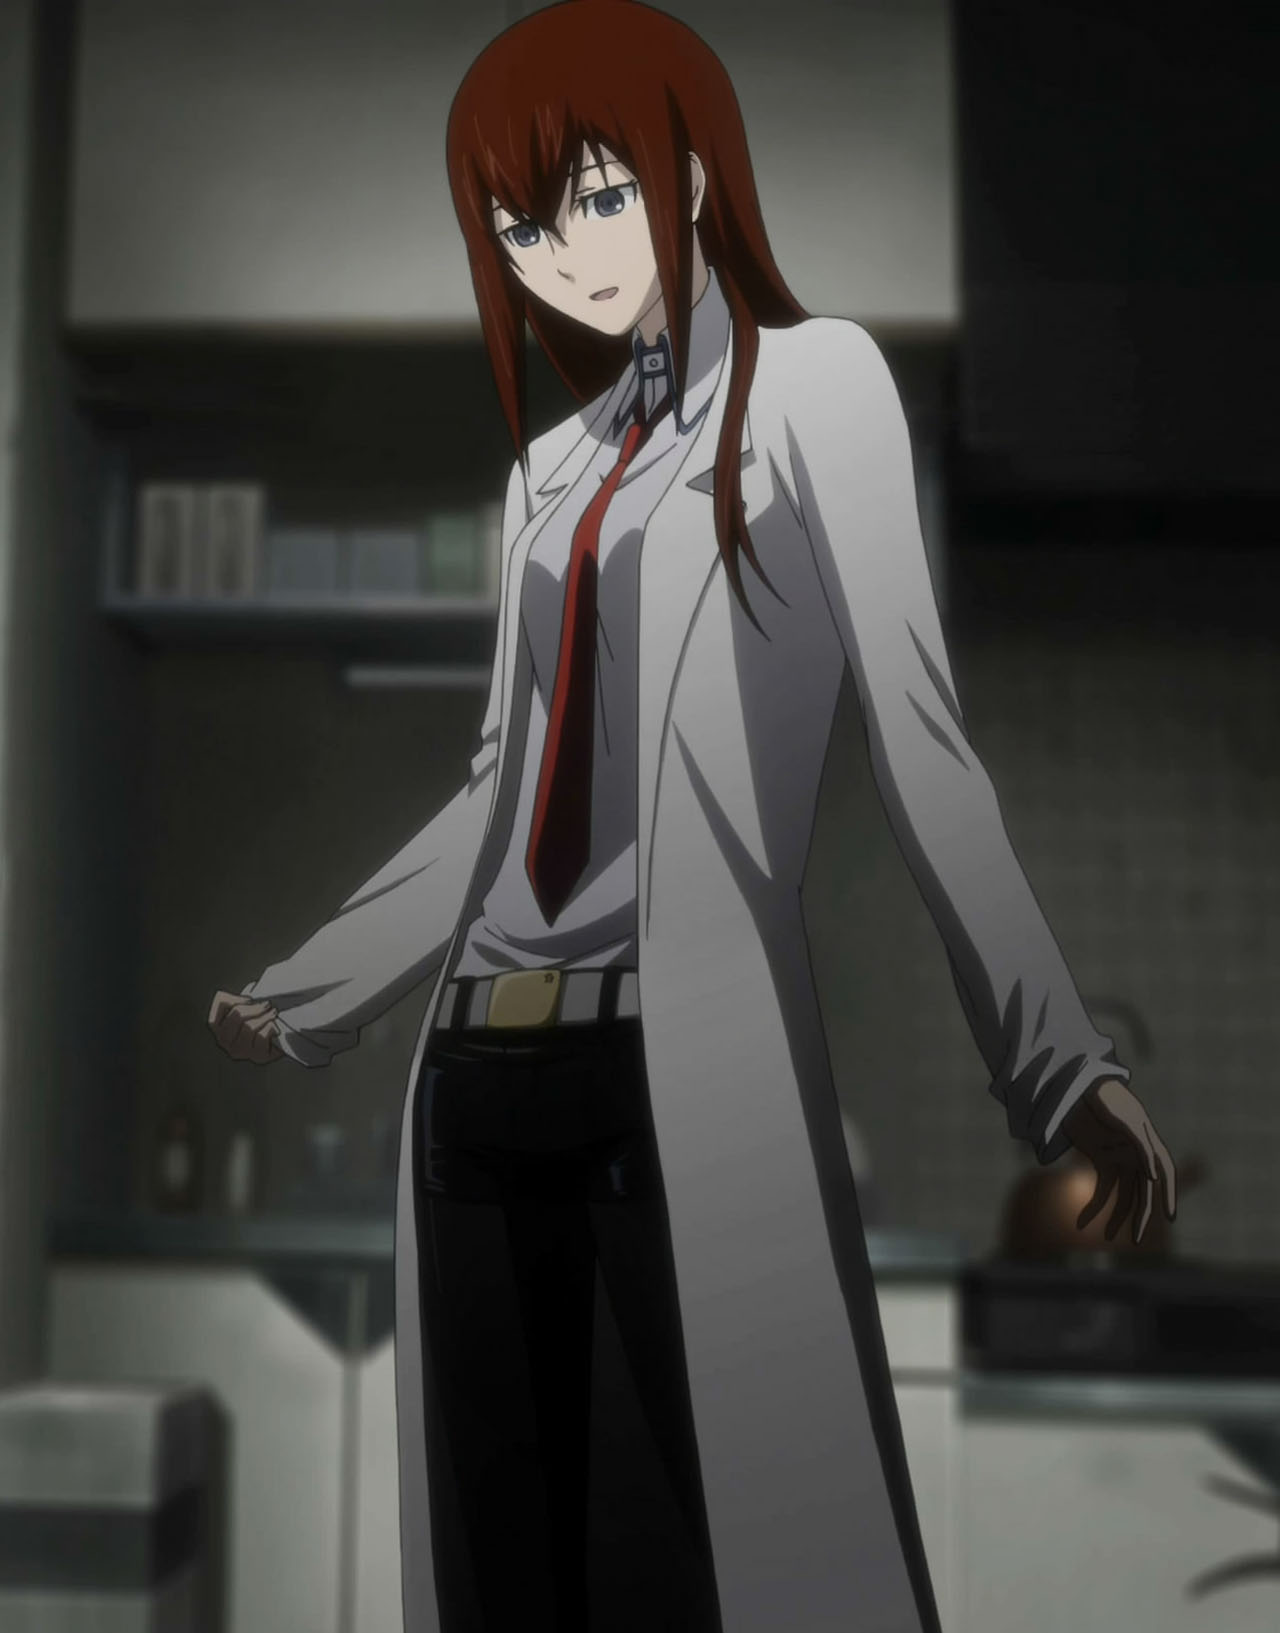 Makise.Kurisu.full.555908.jpg